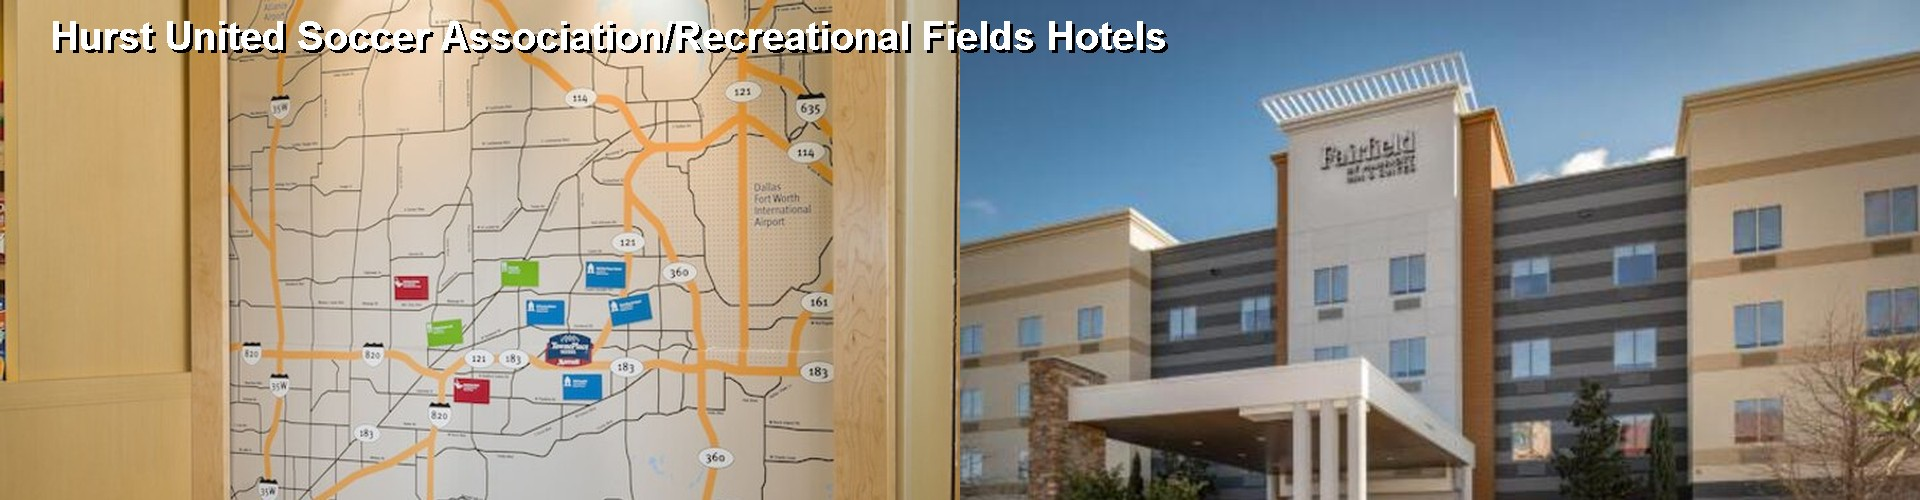 5 Best Hotels near Hurst United Soccer Association/Recreational Fields